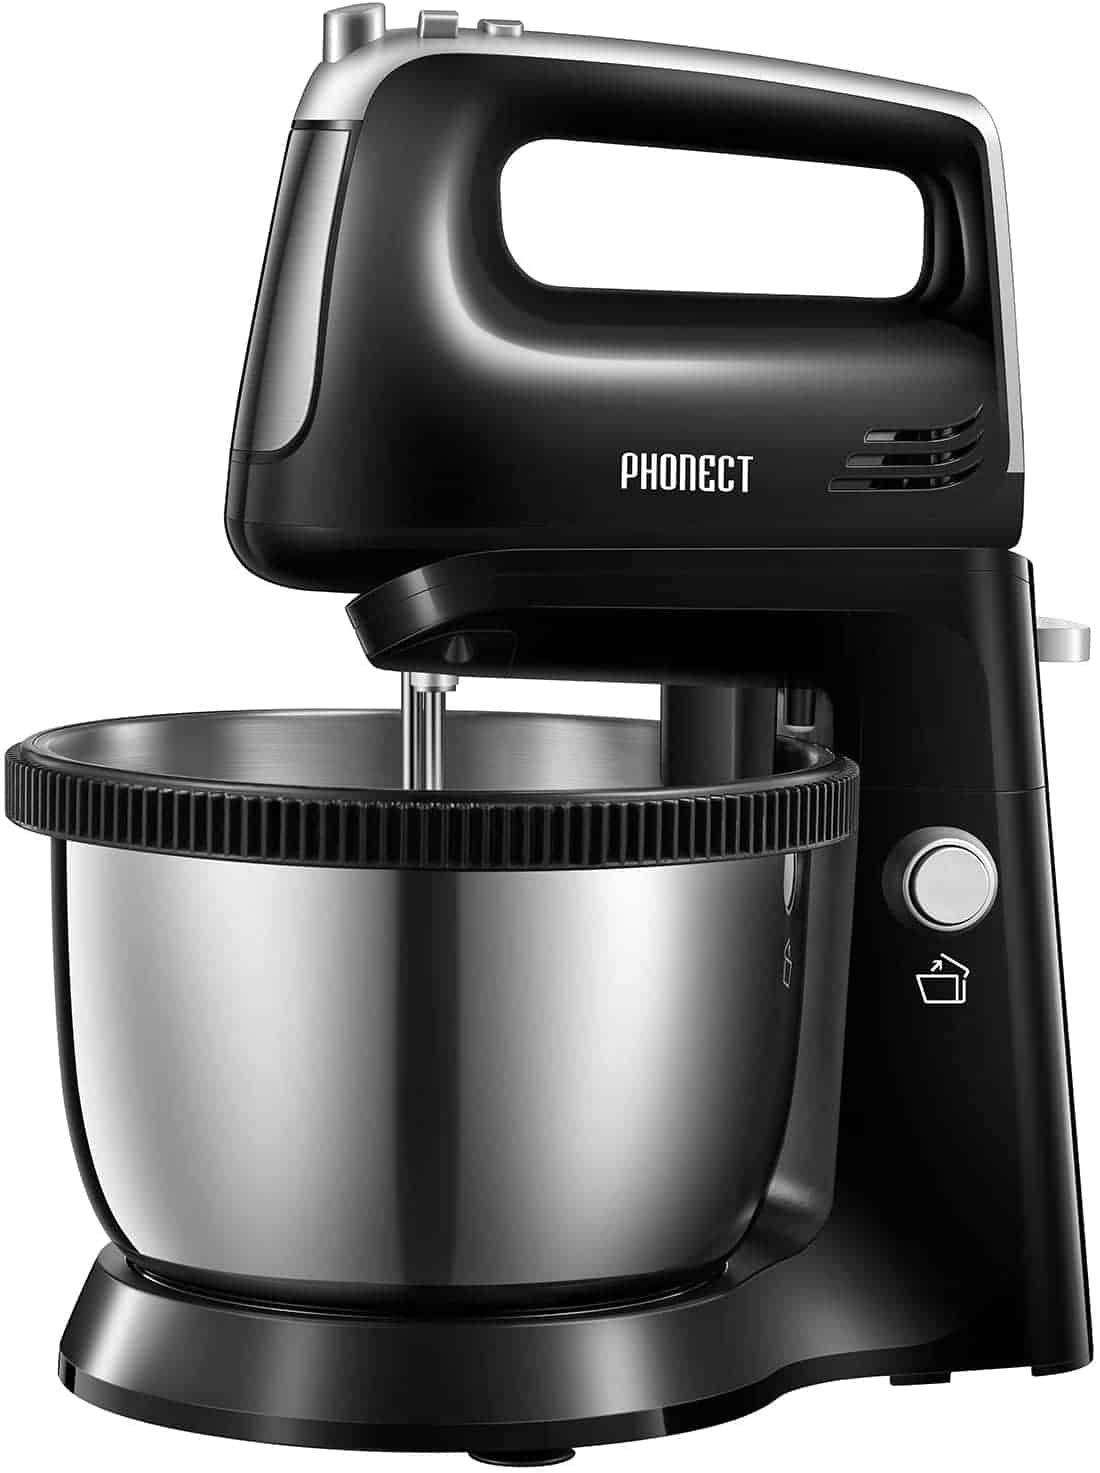 PHONECT Stand and Hand Mixer